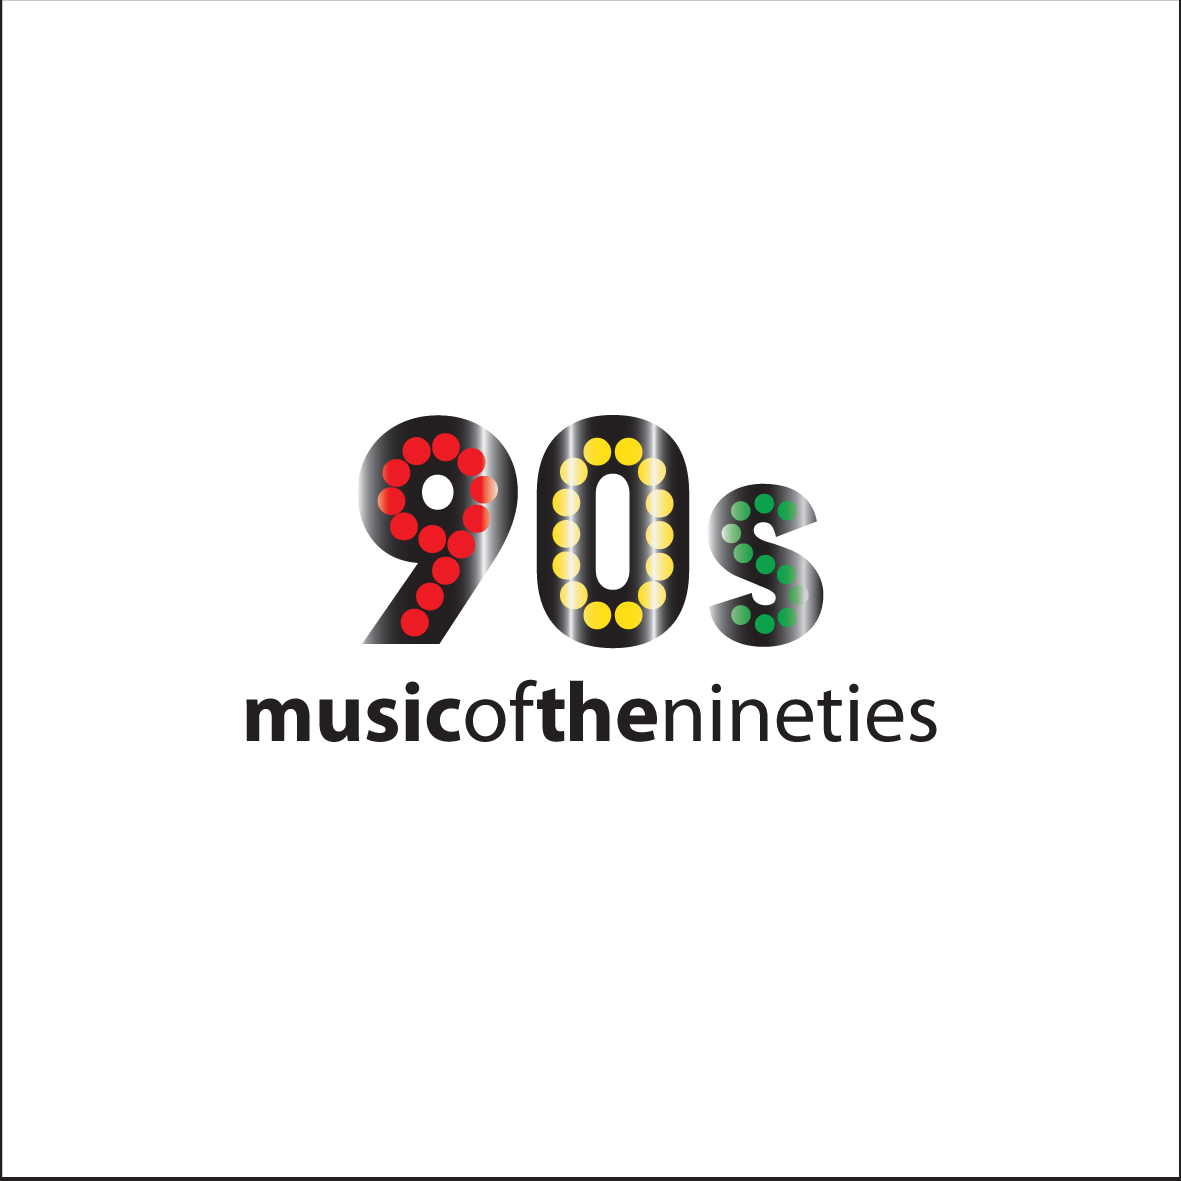 Logo Design by ex - Entry No. 6 in the Logo Design Contest Music of the Nineties Logo.